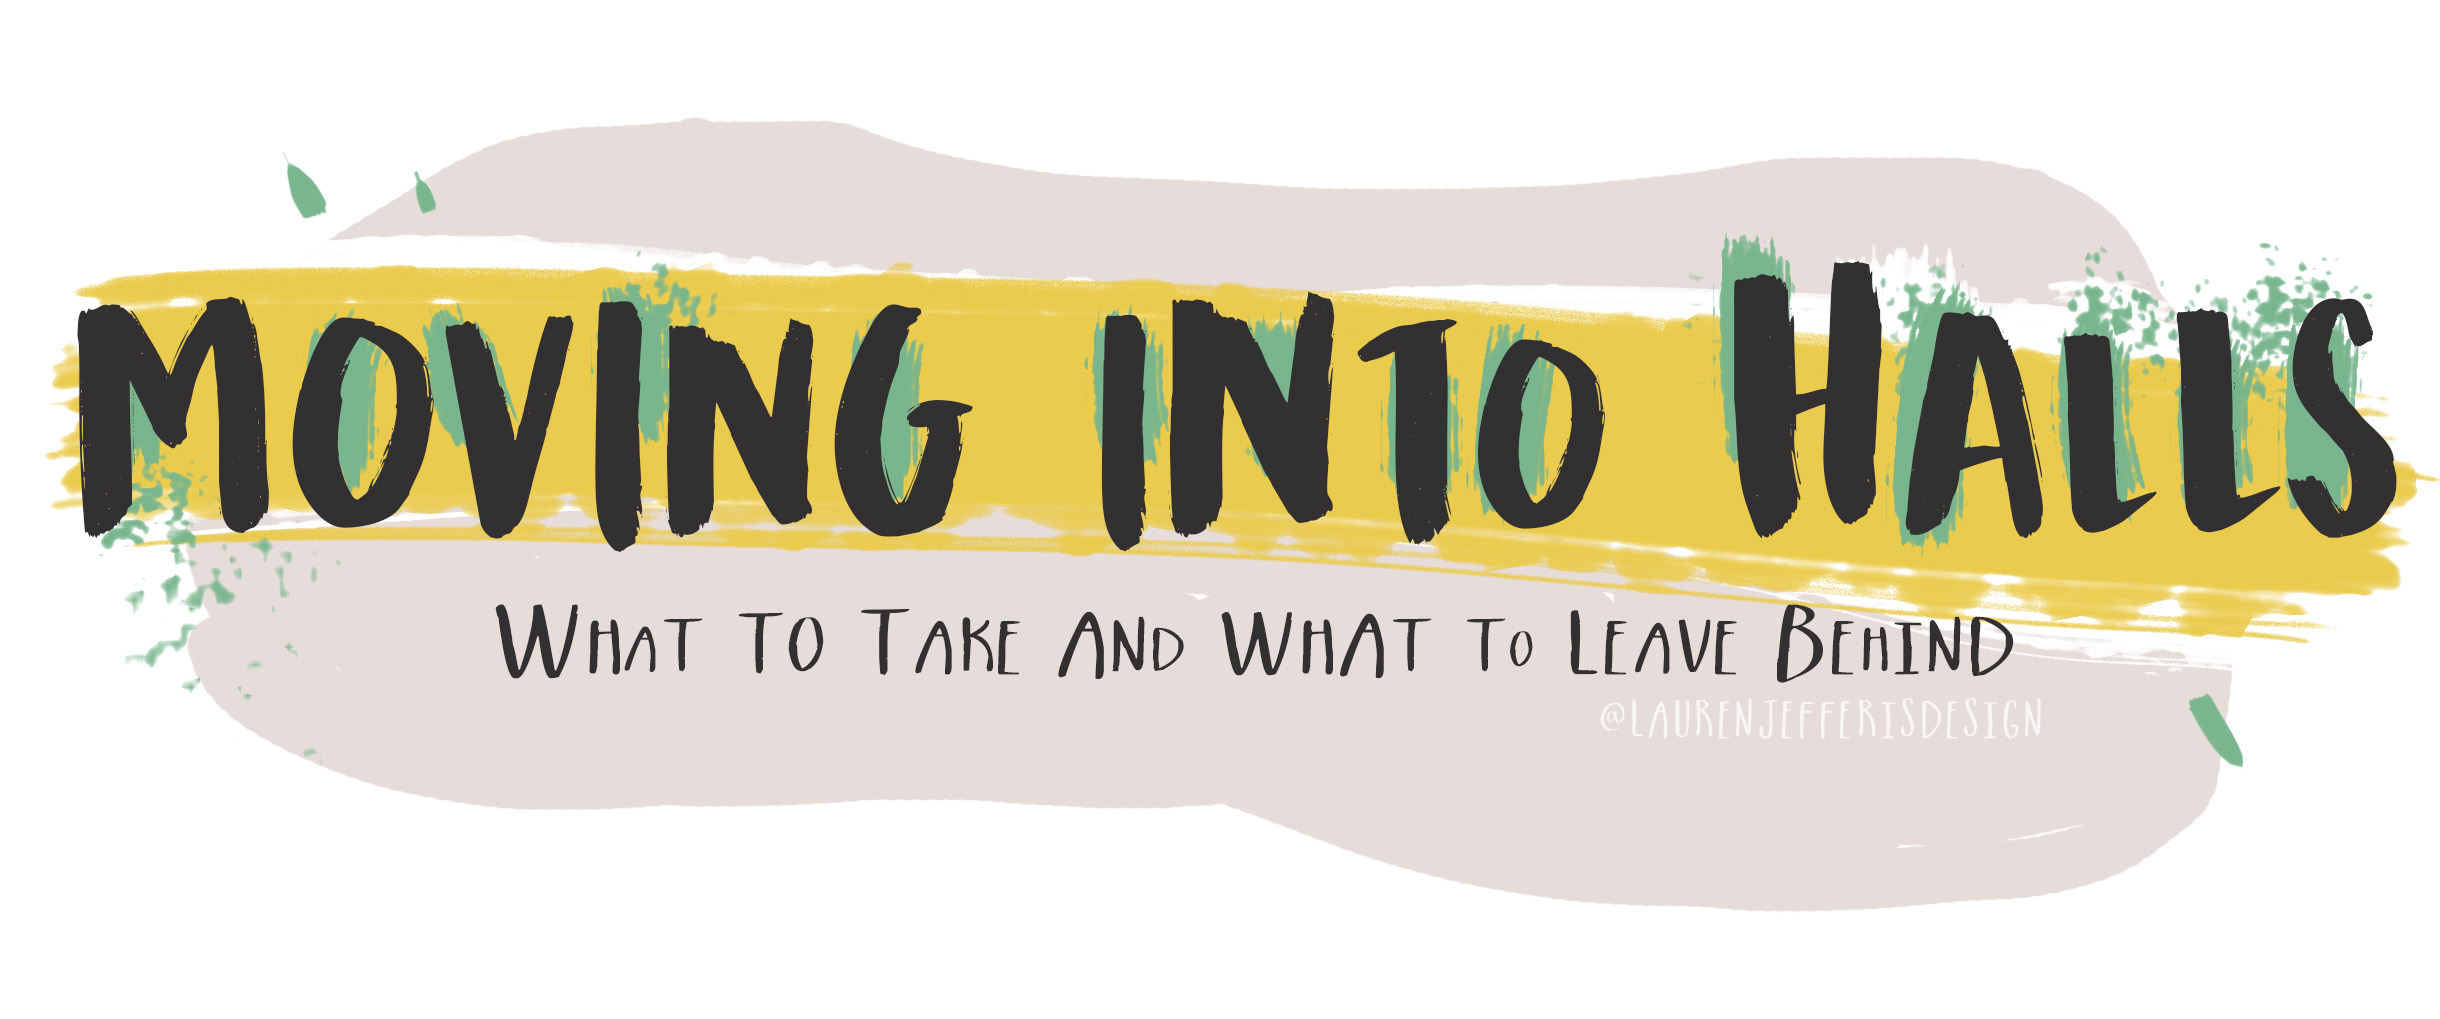 University halls: What to bring and what to leave behind - an illustrated blog